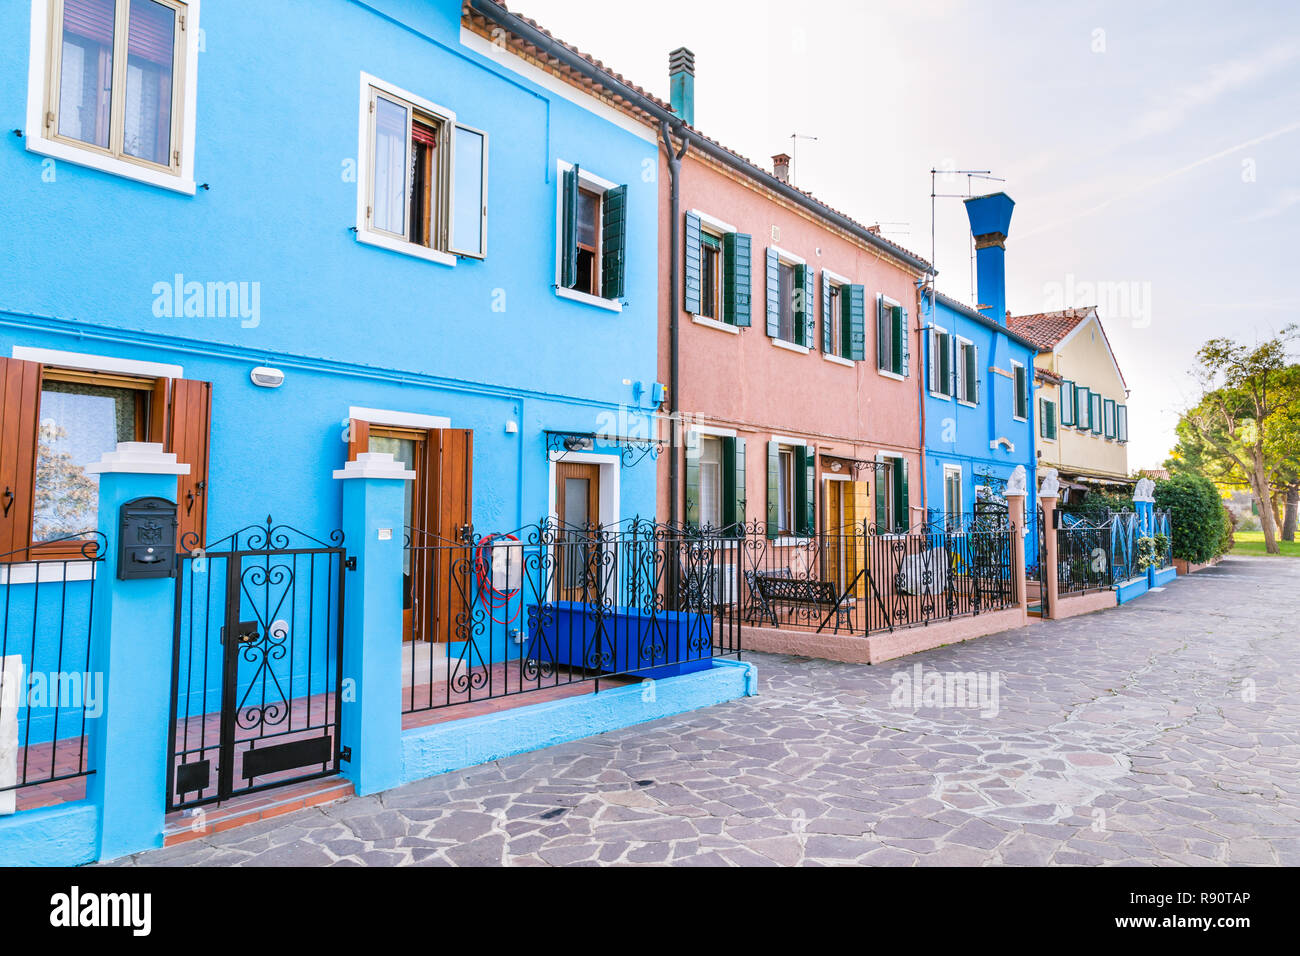 Very beautiful multi-colored houses on  the island Burano, Venice, Italy - Stock Image